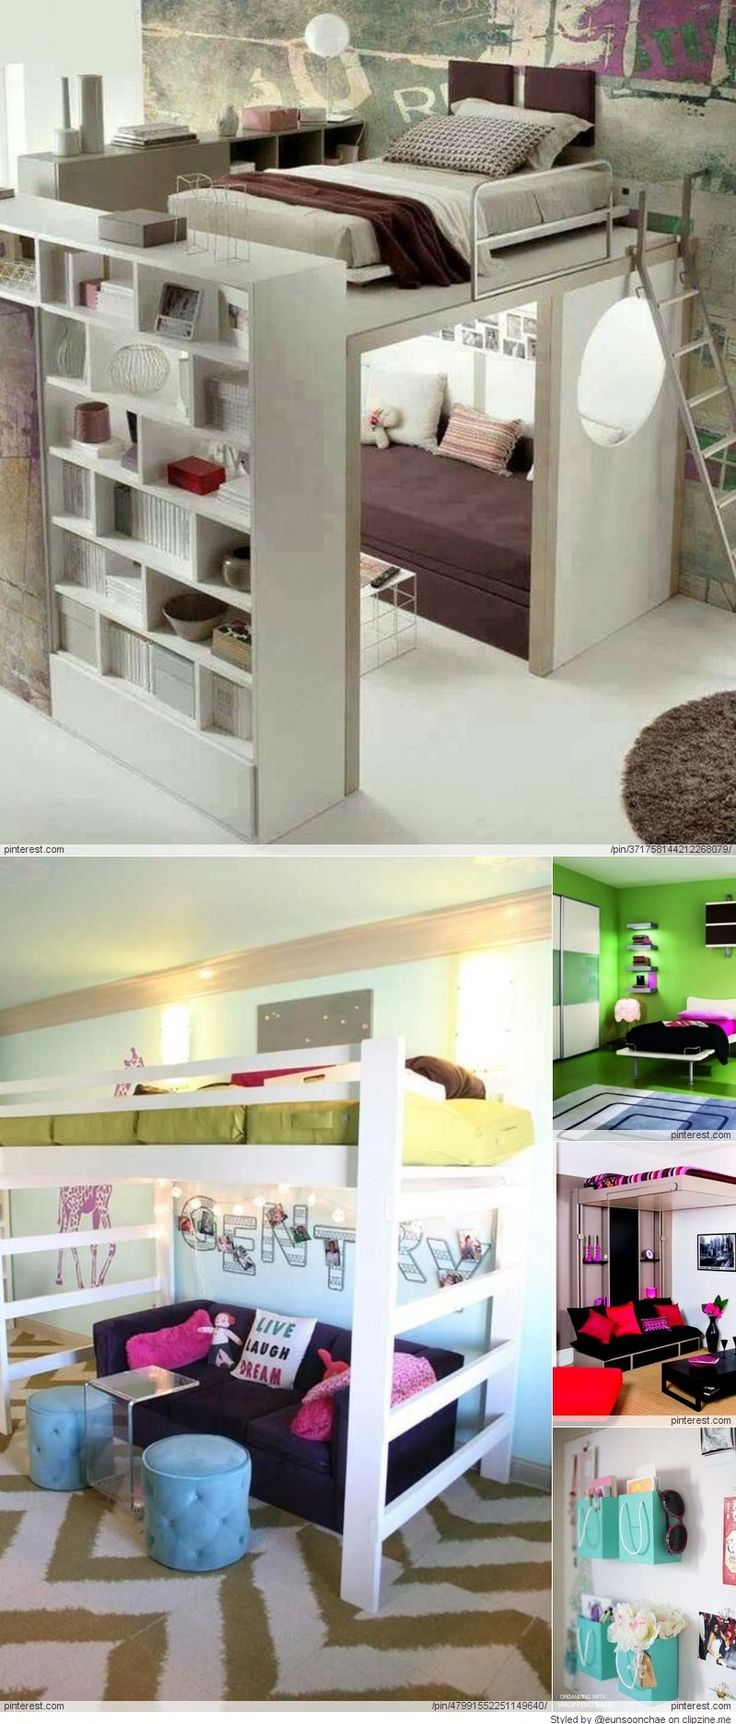 Teenage Girl Bedroom Ideas For Small Rooms best 20+ teen shared bedroom ideas on pinterest | teen study room